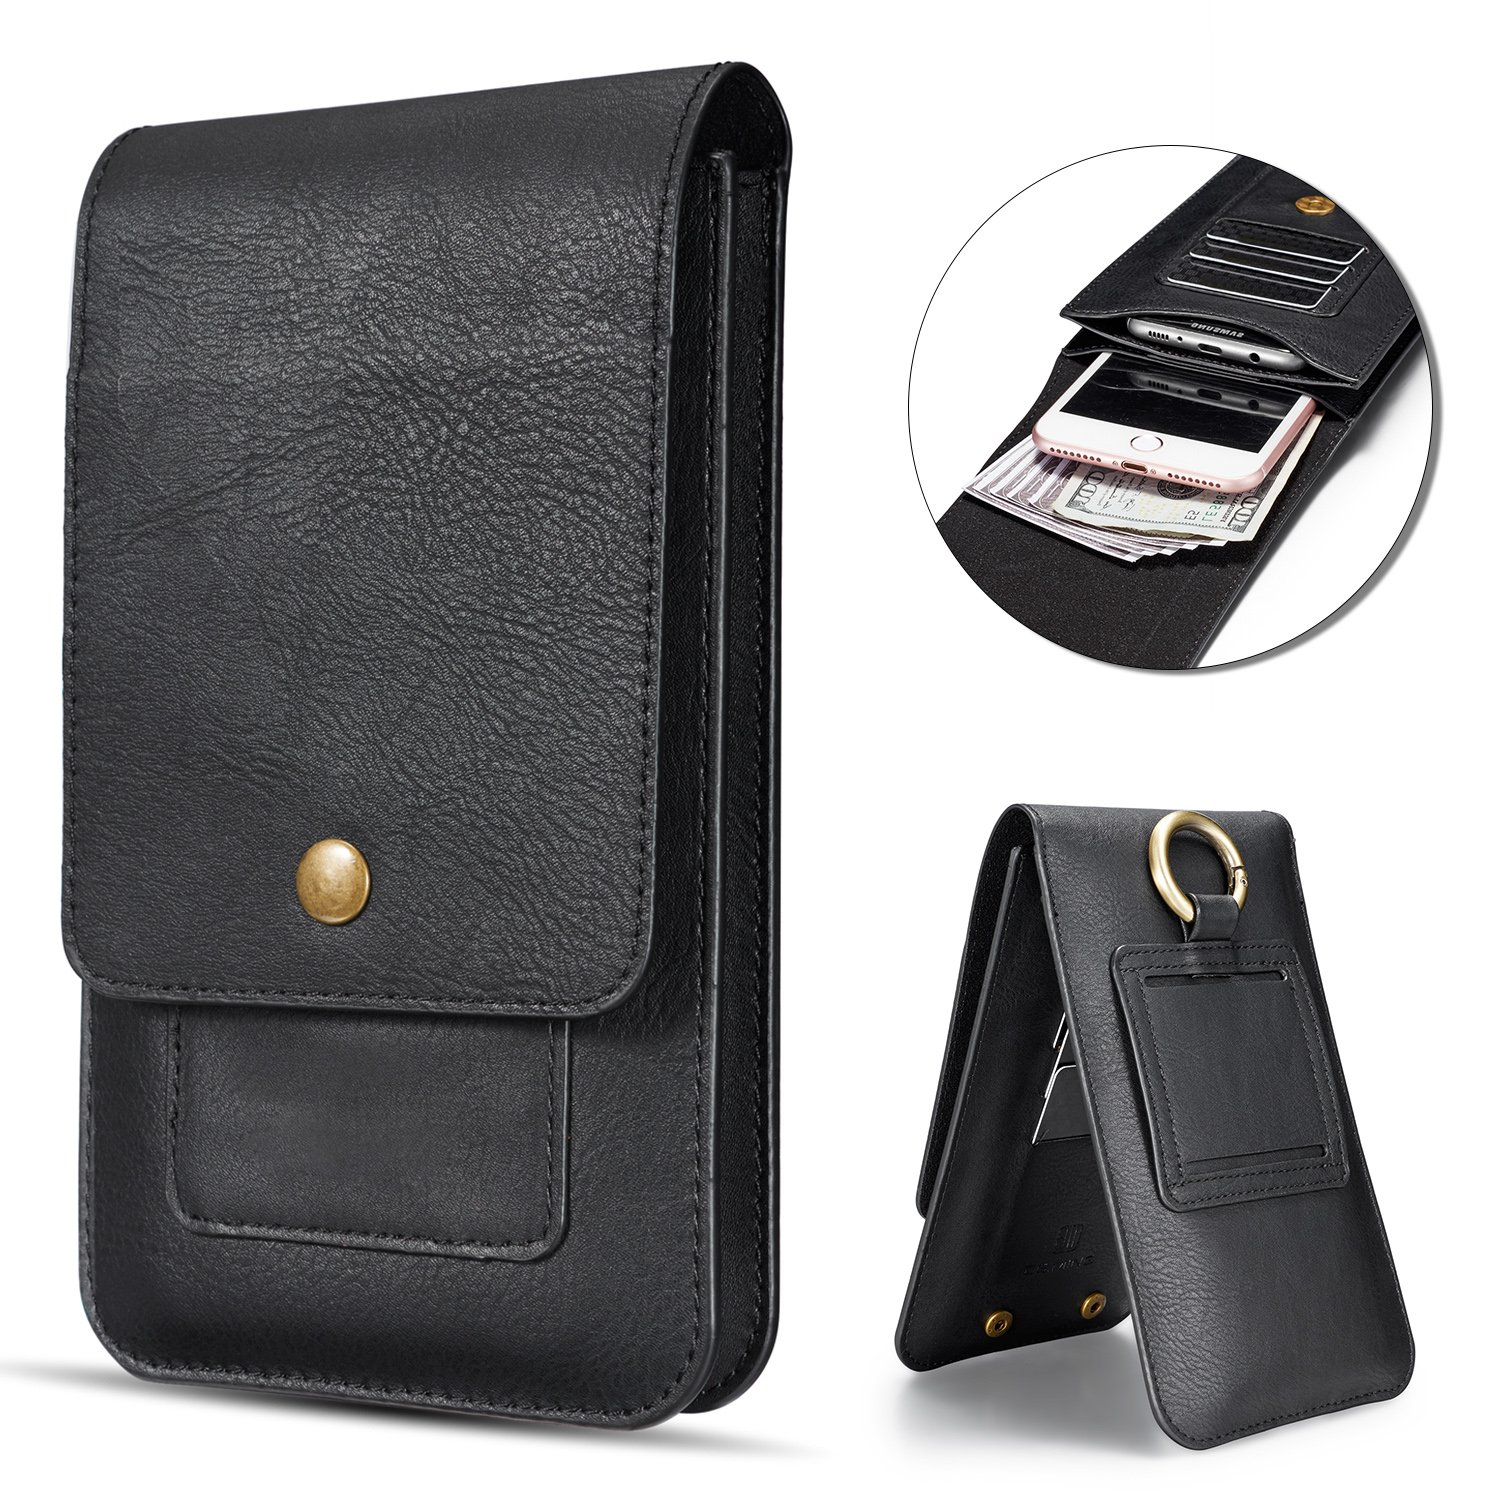 Vandot PU Leather Vertical Men Cellphone Belt Loop Holster Hip Bum Bag Case Belt Waist Bag Mini Travel Messager Pouch Crossbody Pack Purse Wallet with Clip+Keychain for all Phone under 6.5 inch,Black